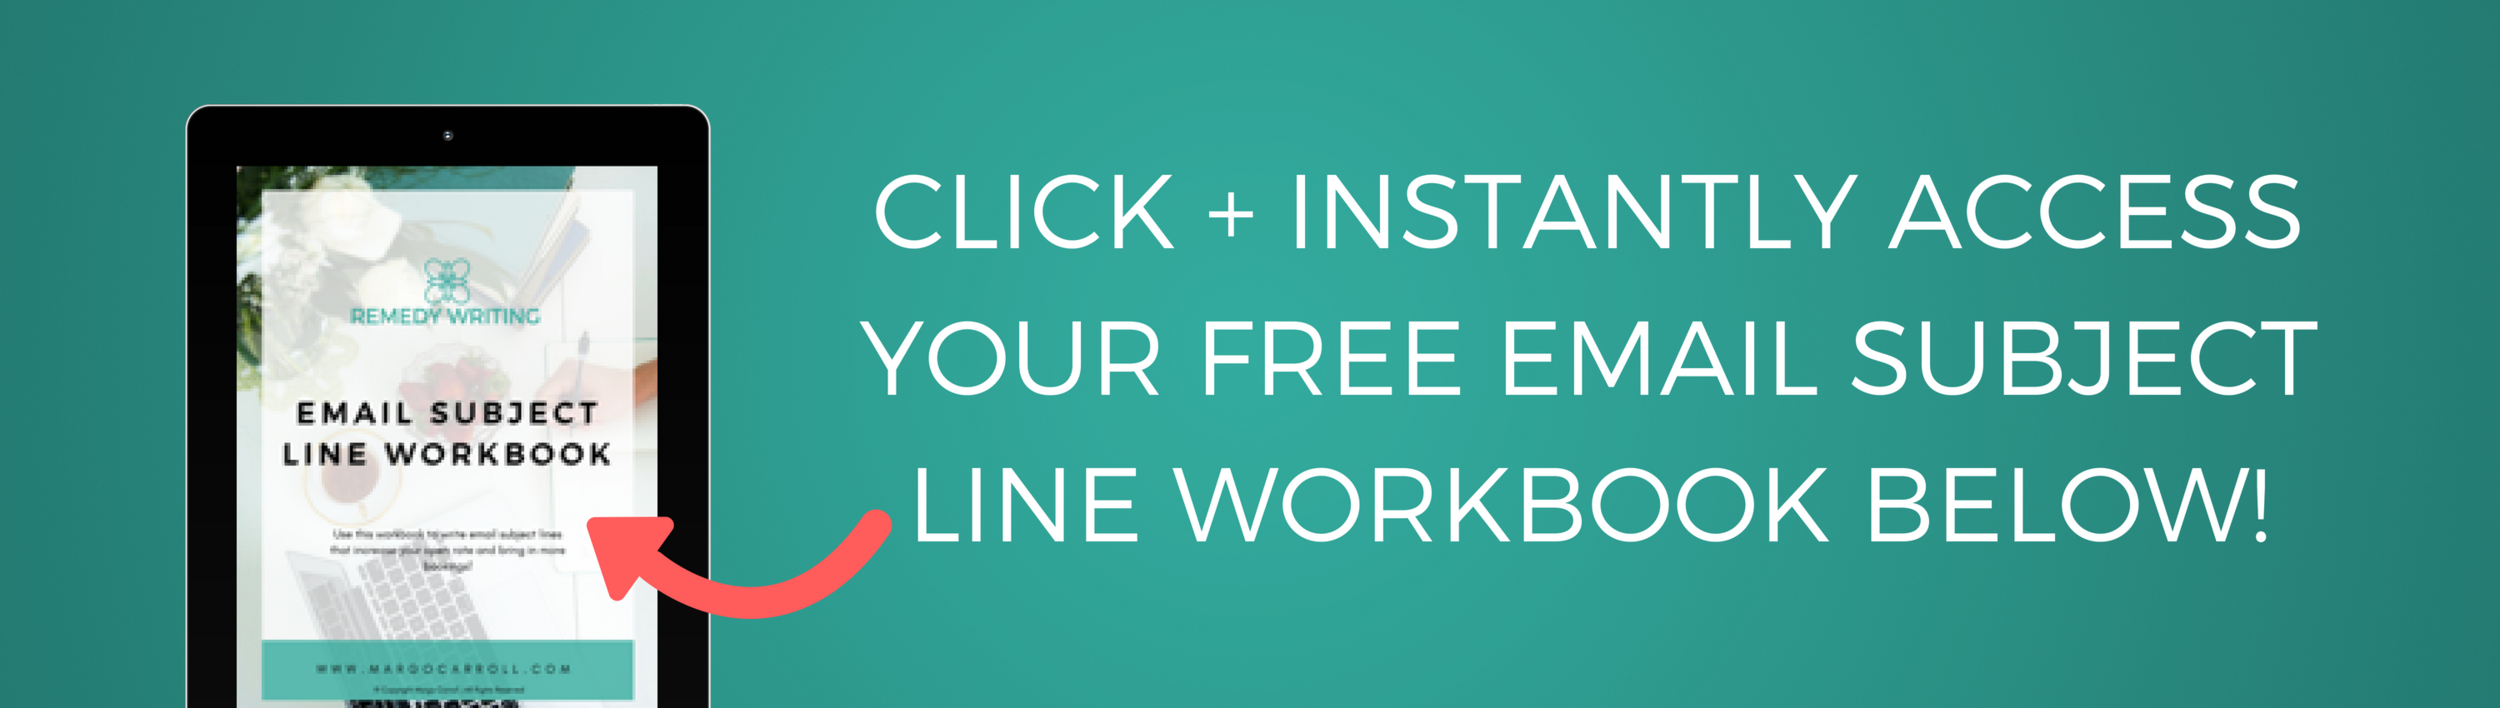 Email Subject Line Workbook